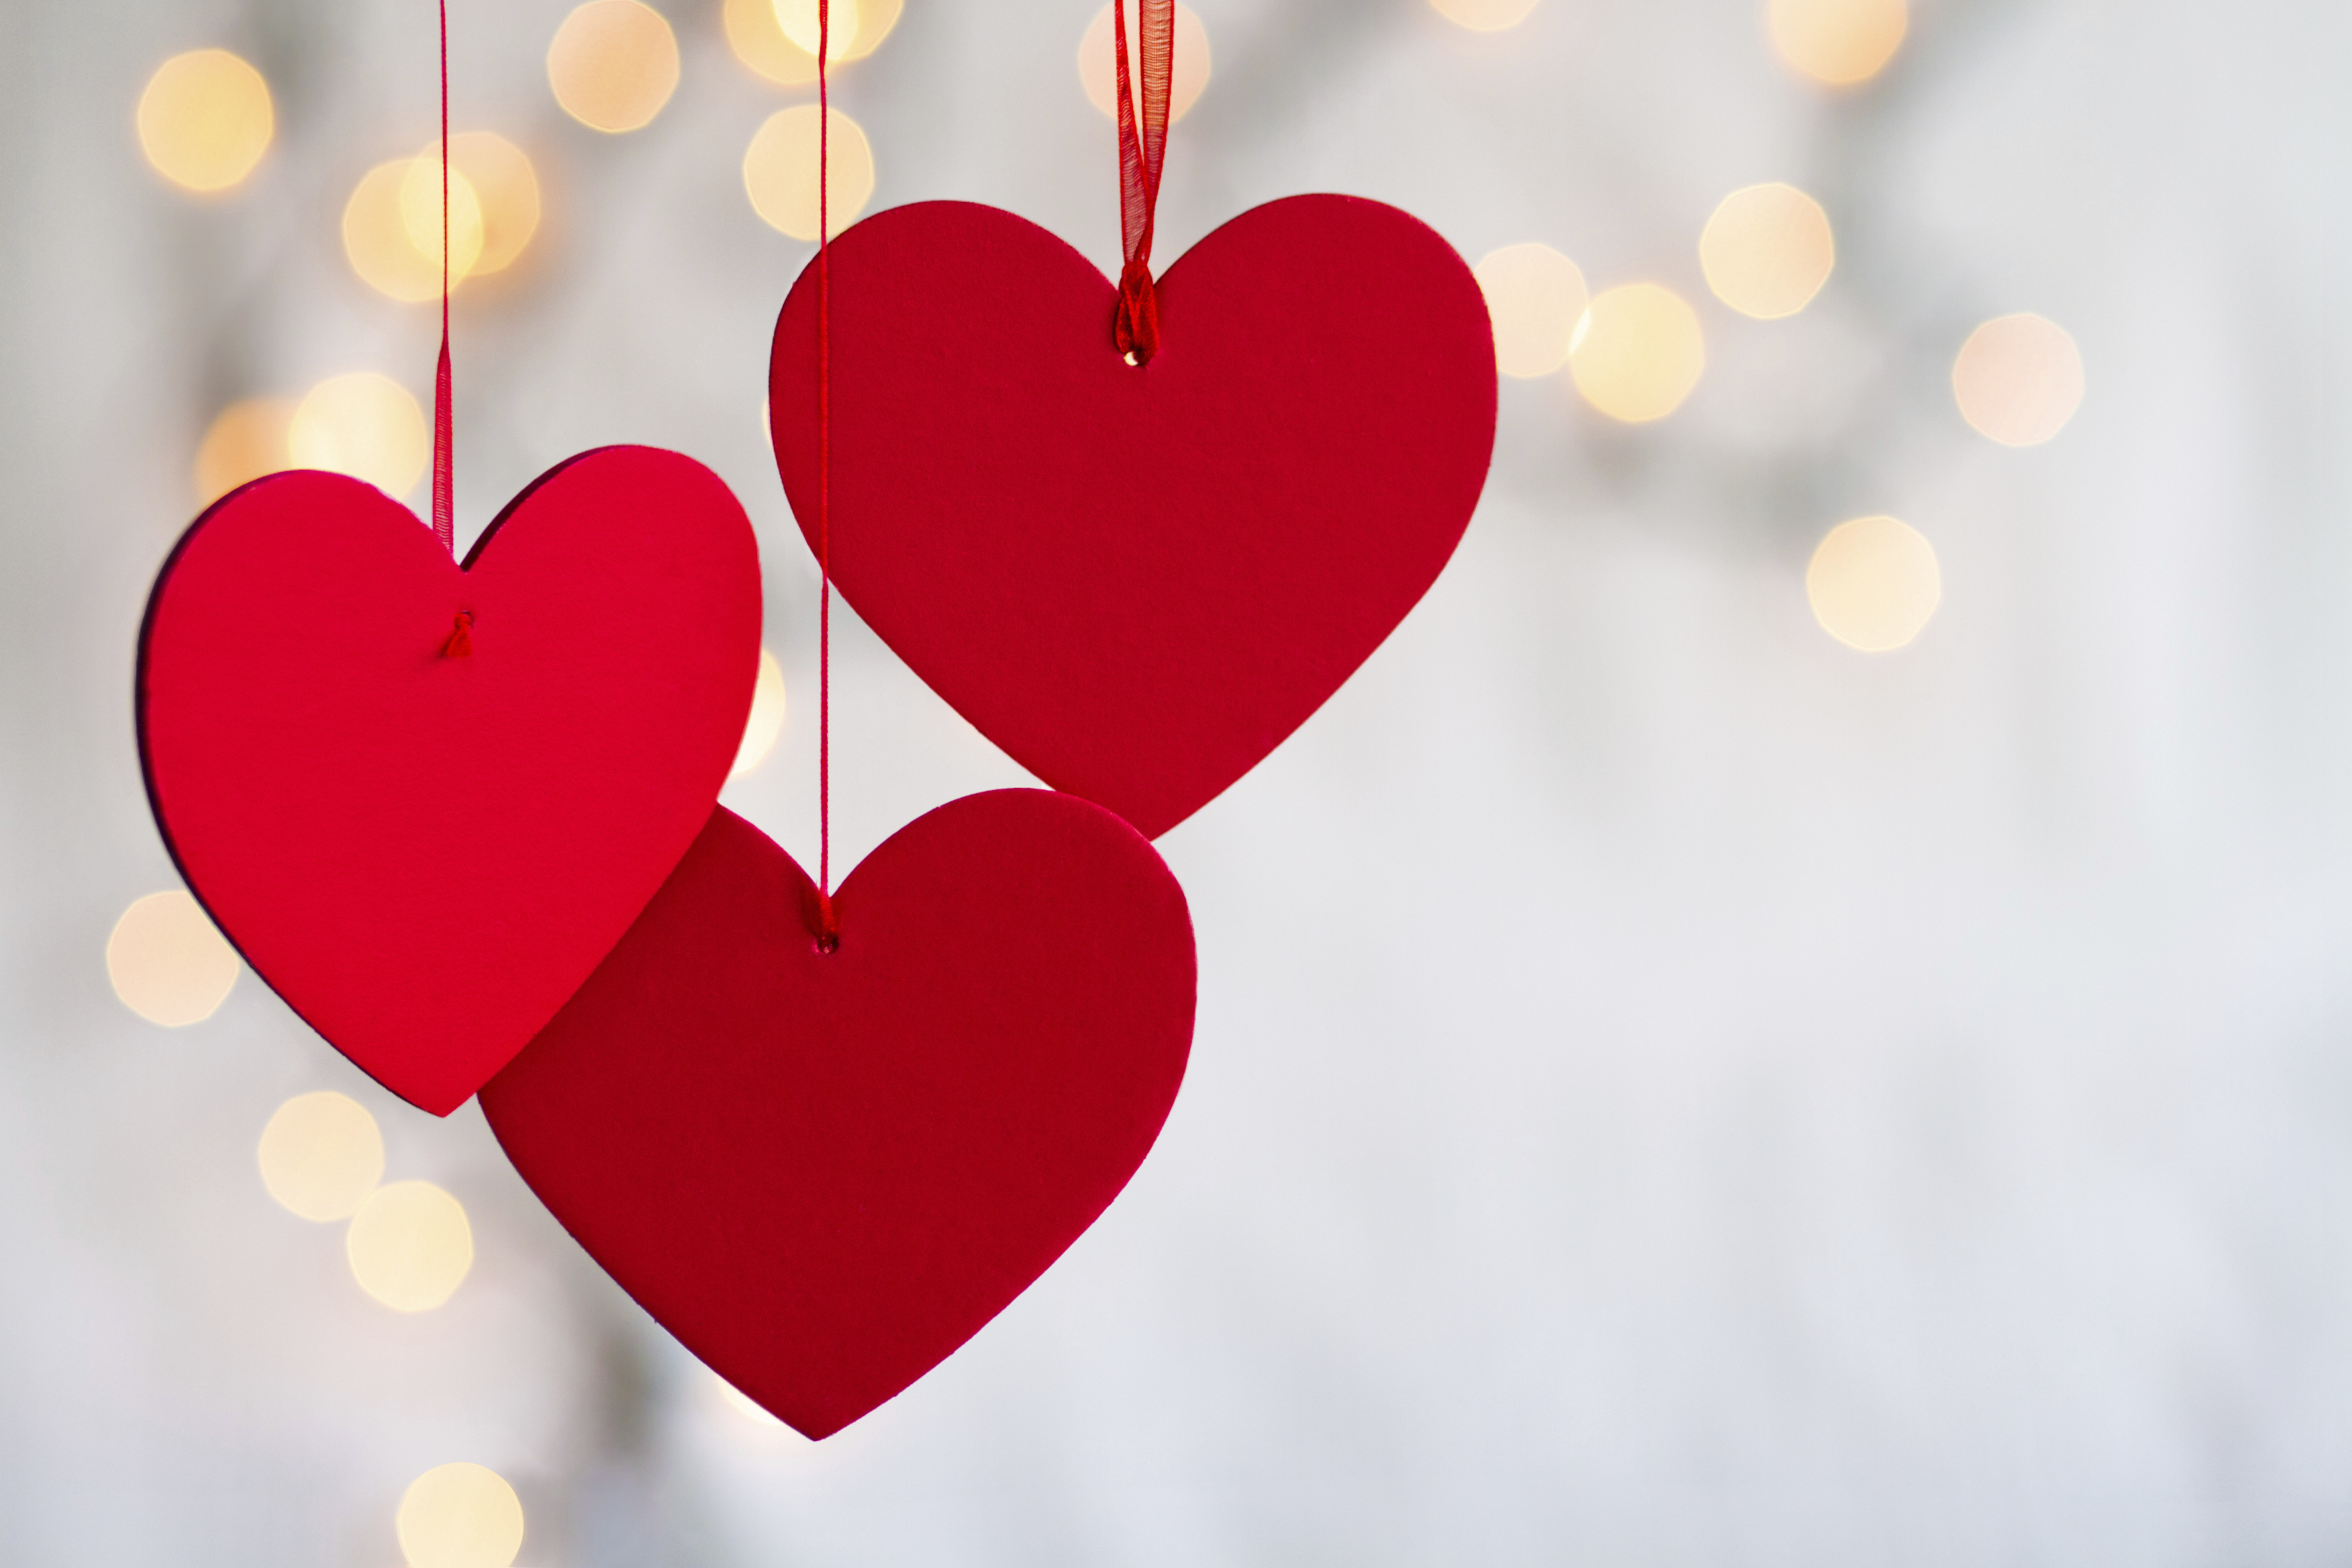 Valentines Day HD Wallpaper Background Image